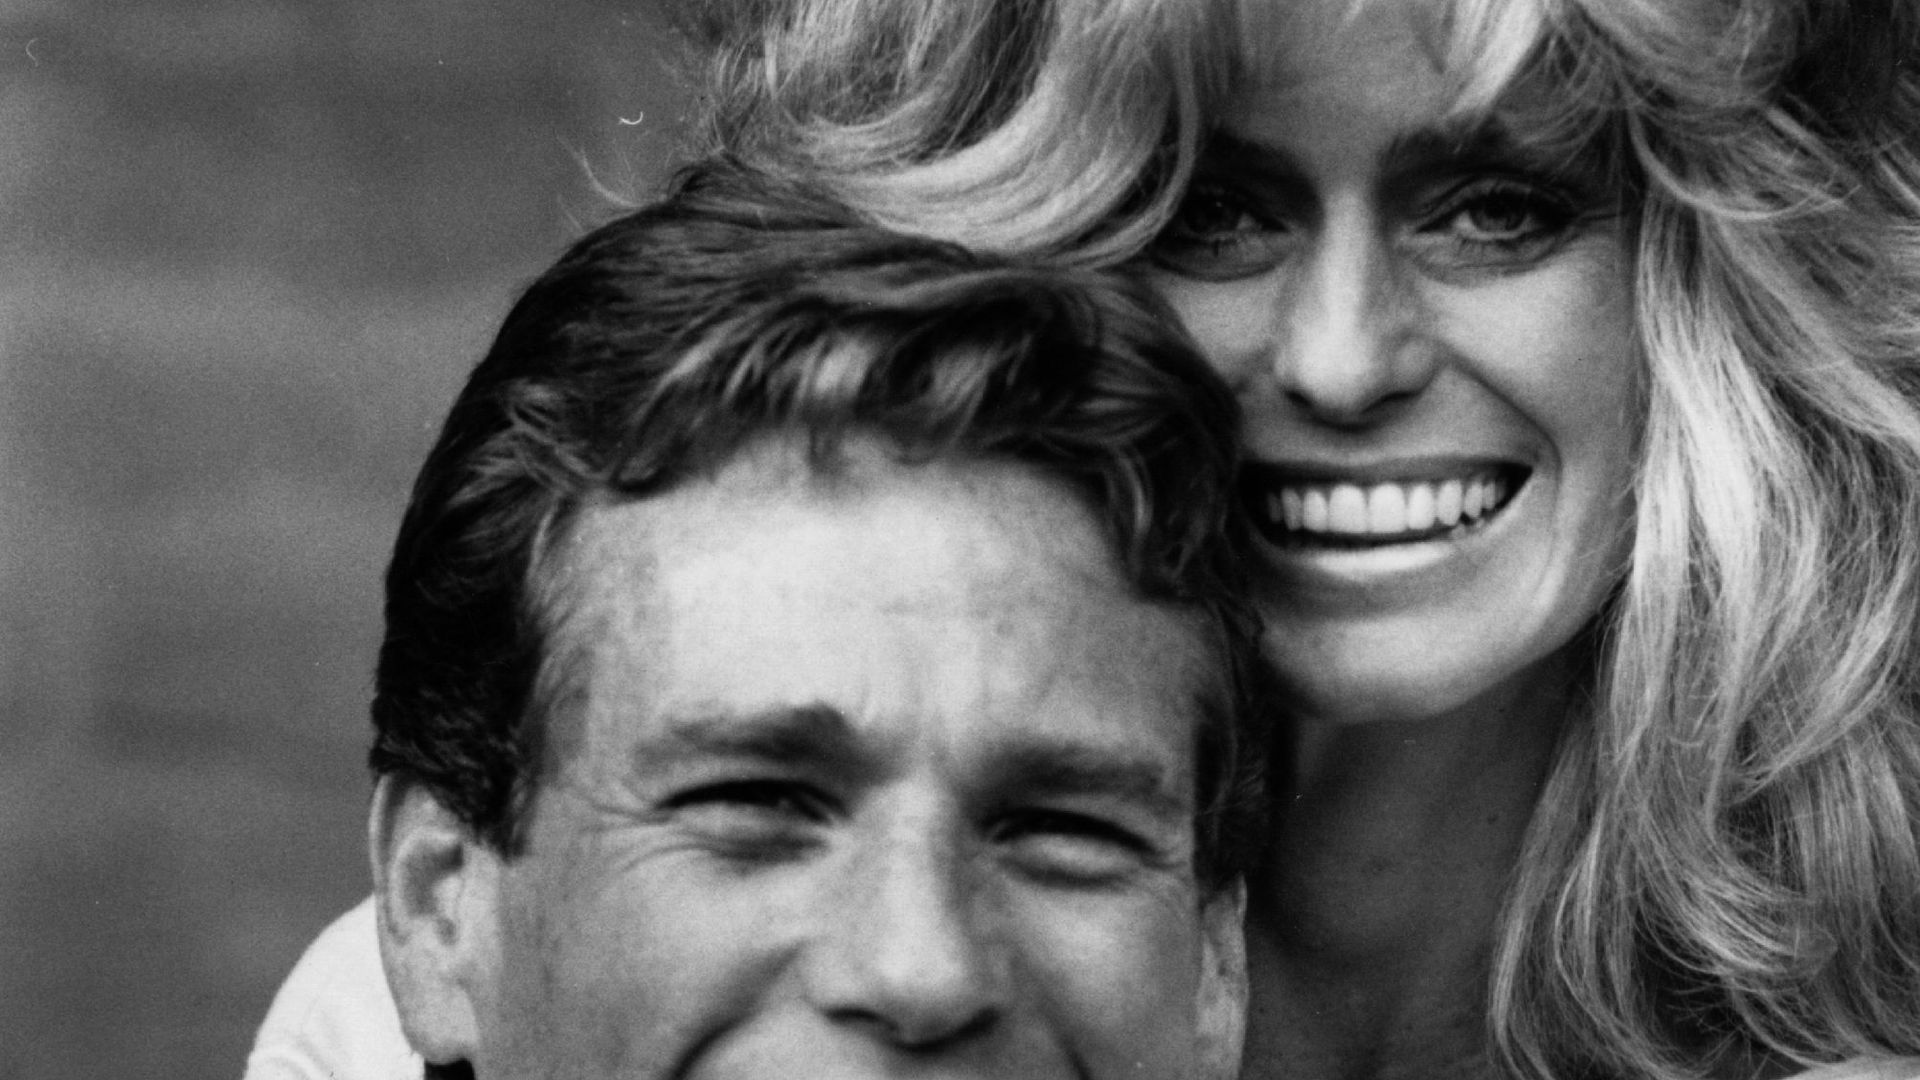 Portraits of Sexy Young Farrah Fawcett Taken by Bruce